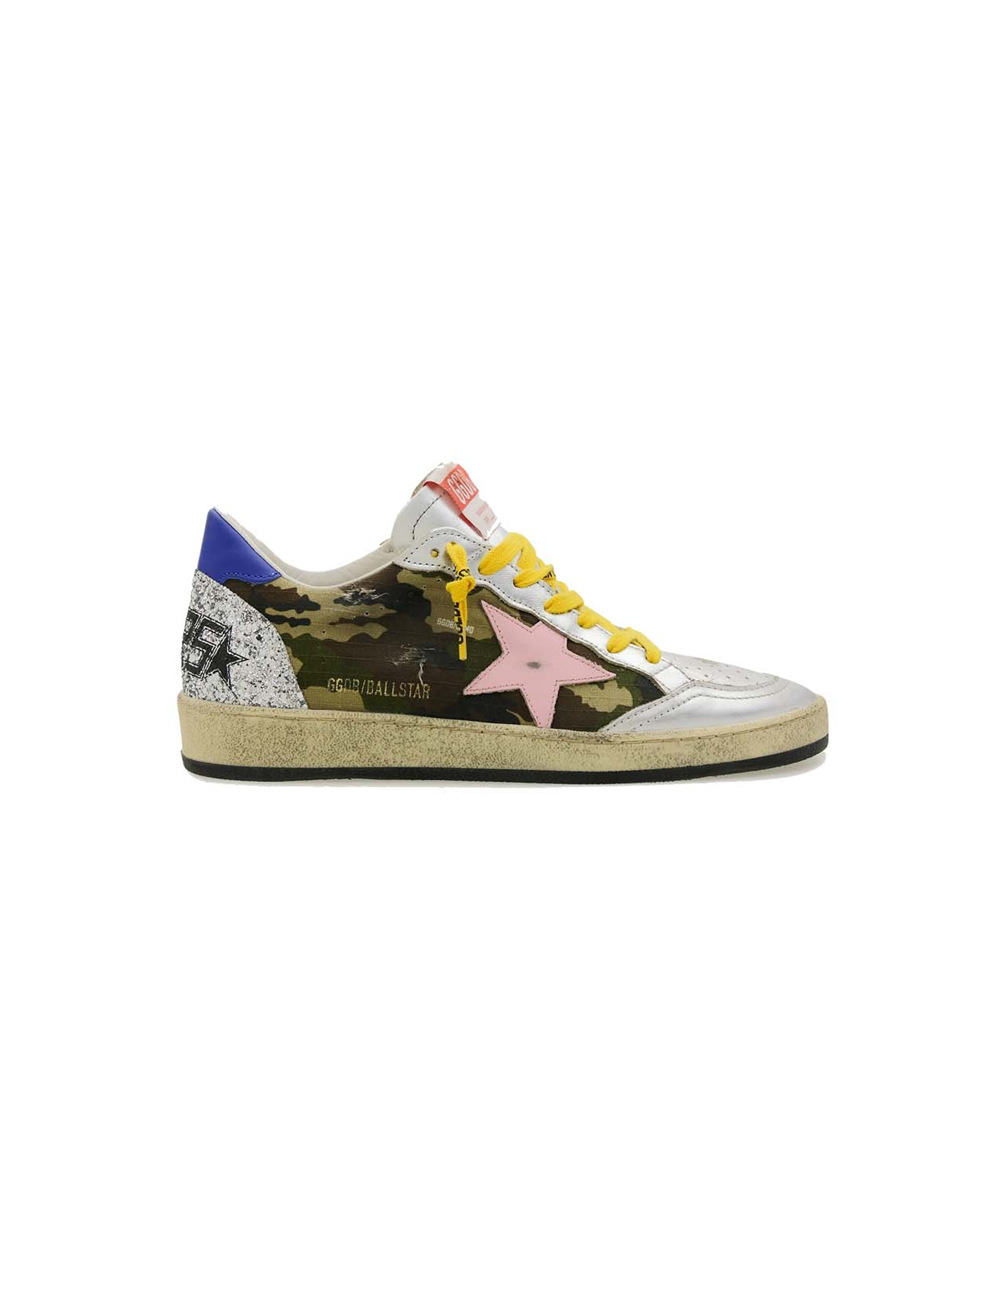 Ball star camouflage sneakers Golden Goose - BIG BOSS MEGEVE